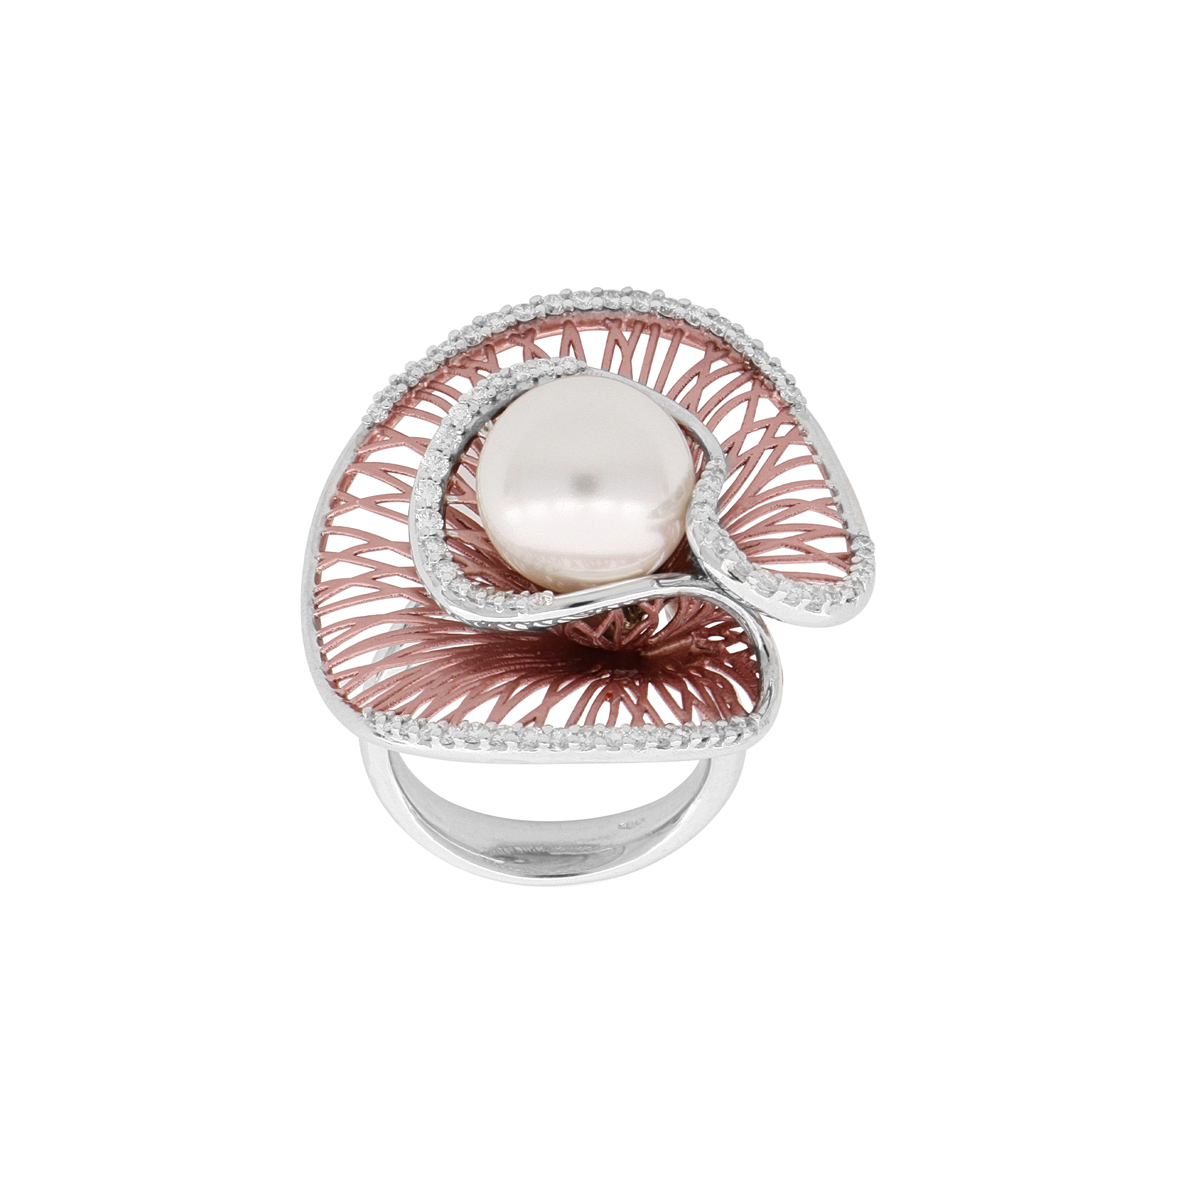 Modern 18 Kt White Gold Pearl Ring with Diamonds